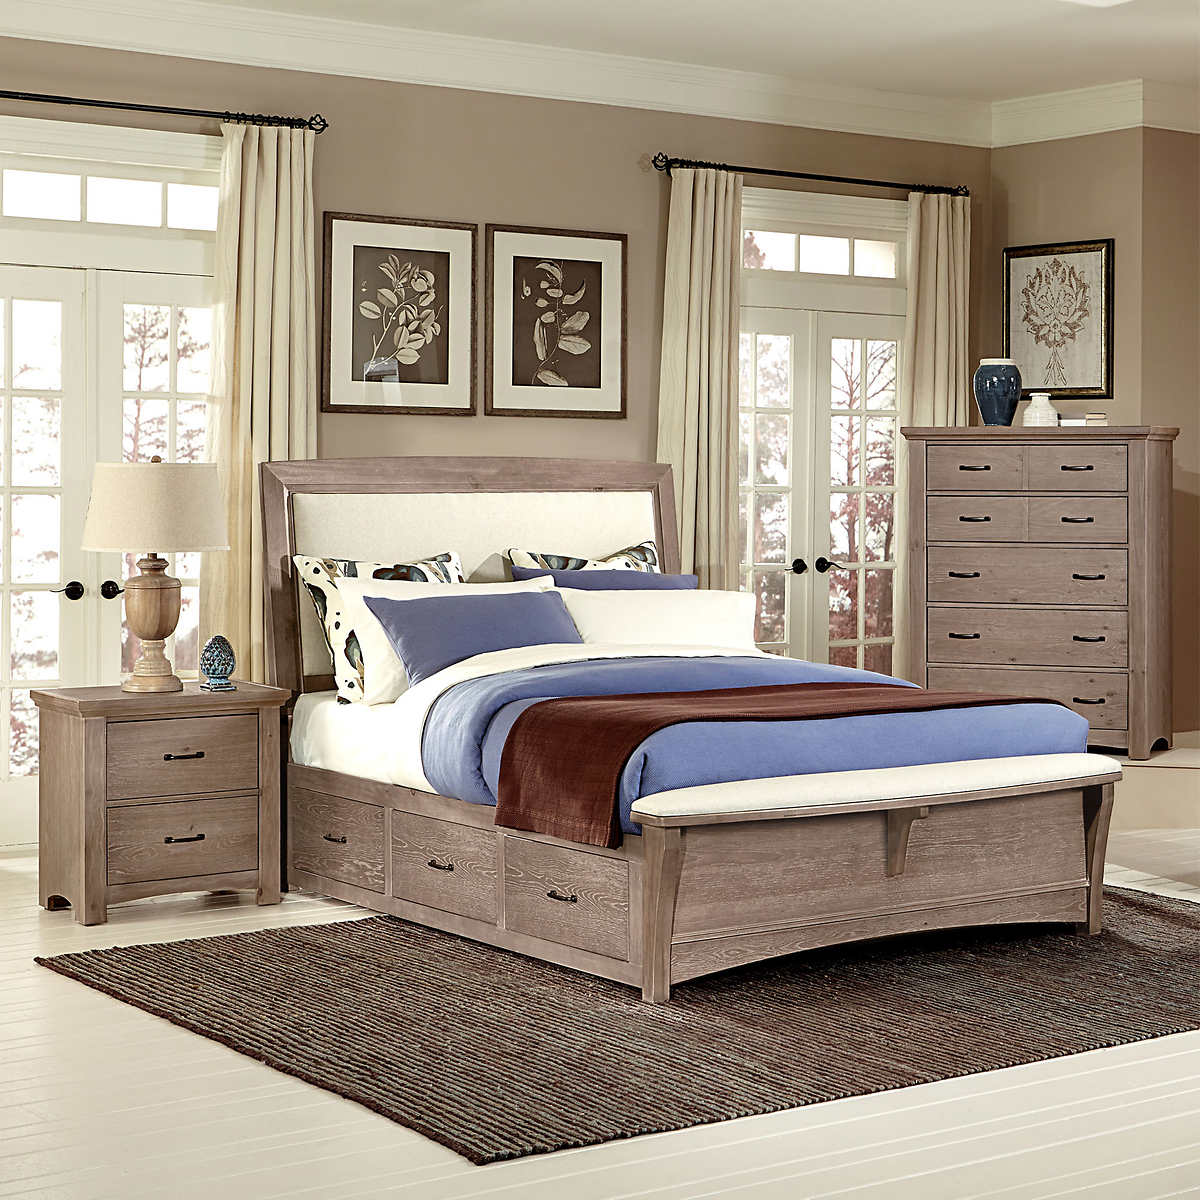 queen bedroom sets  costco - chambers dual storage piece queen bedroom set